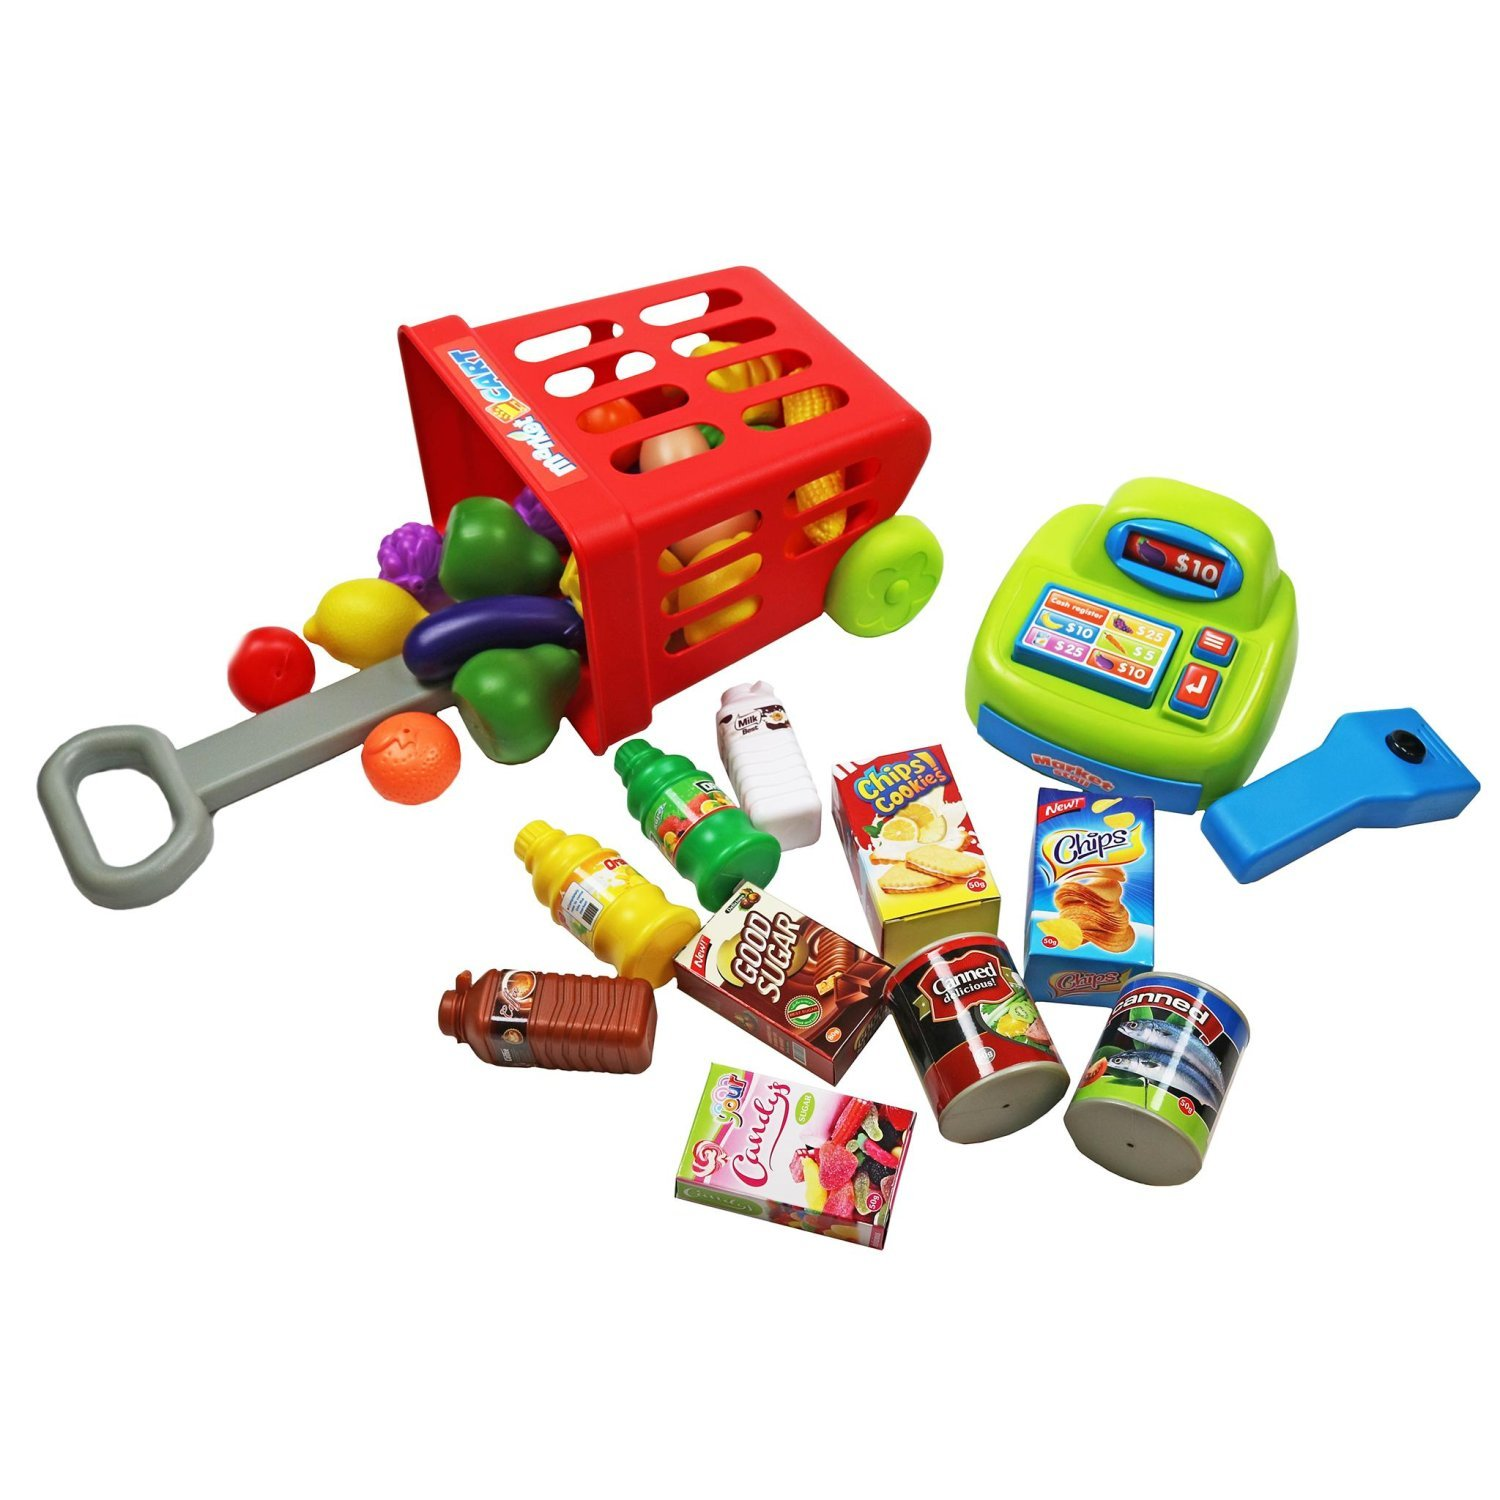 Best Pretend Play Toys For Kids : Childrens kids supermarket shop grocery pretend toy play